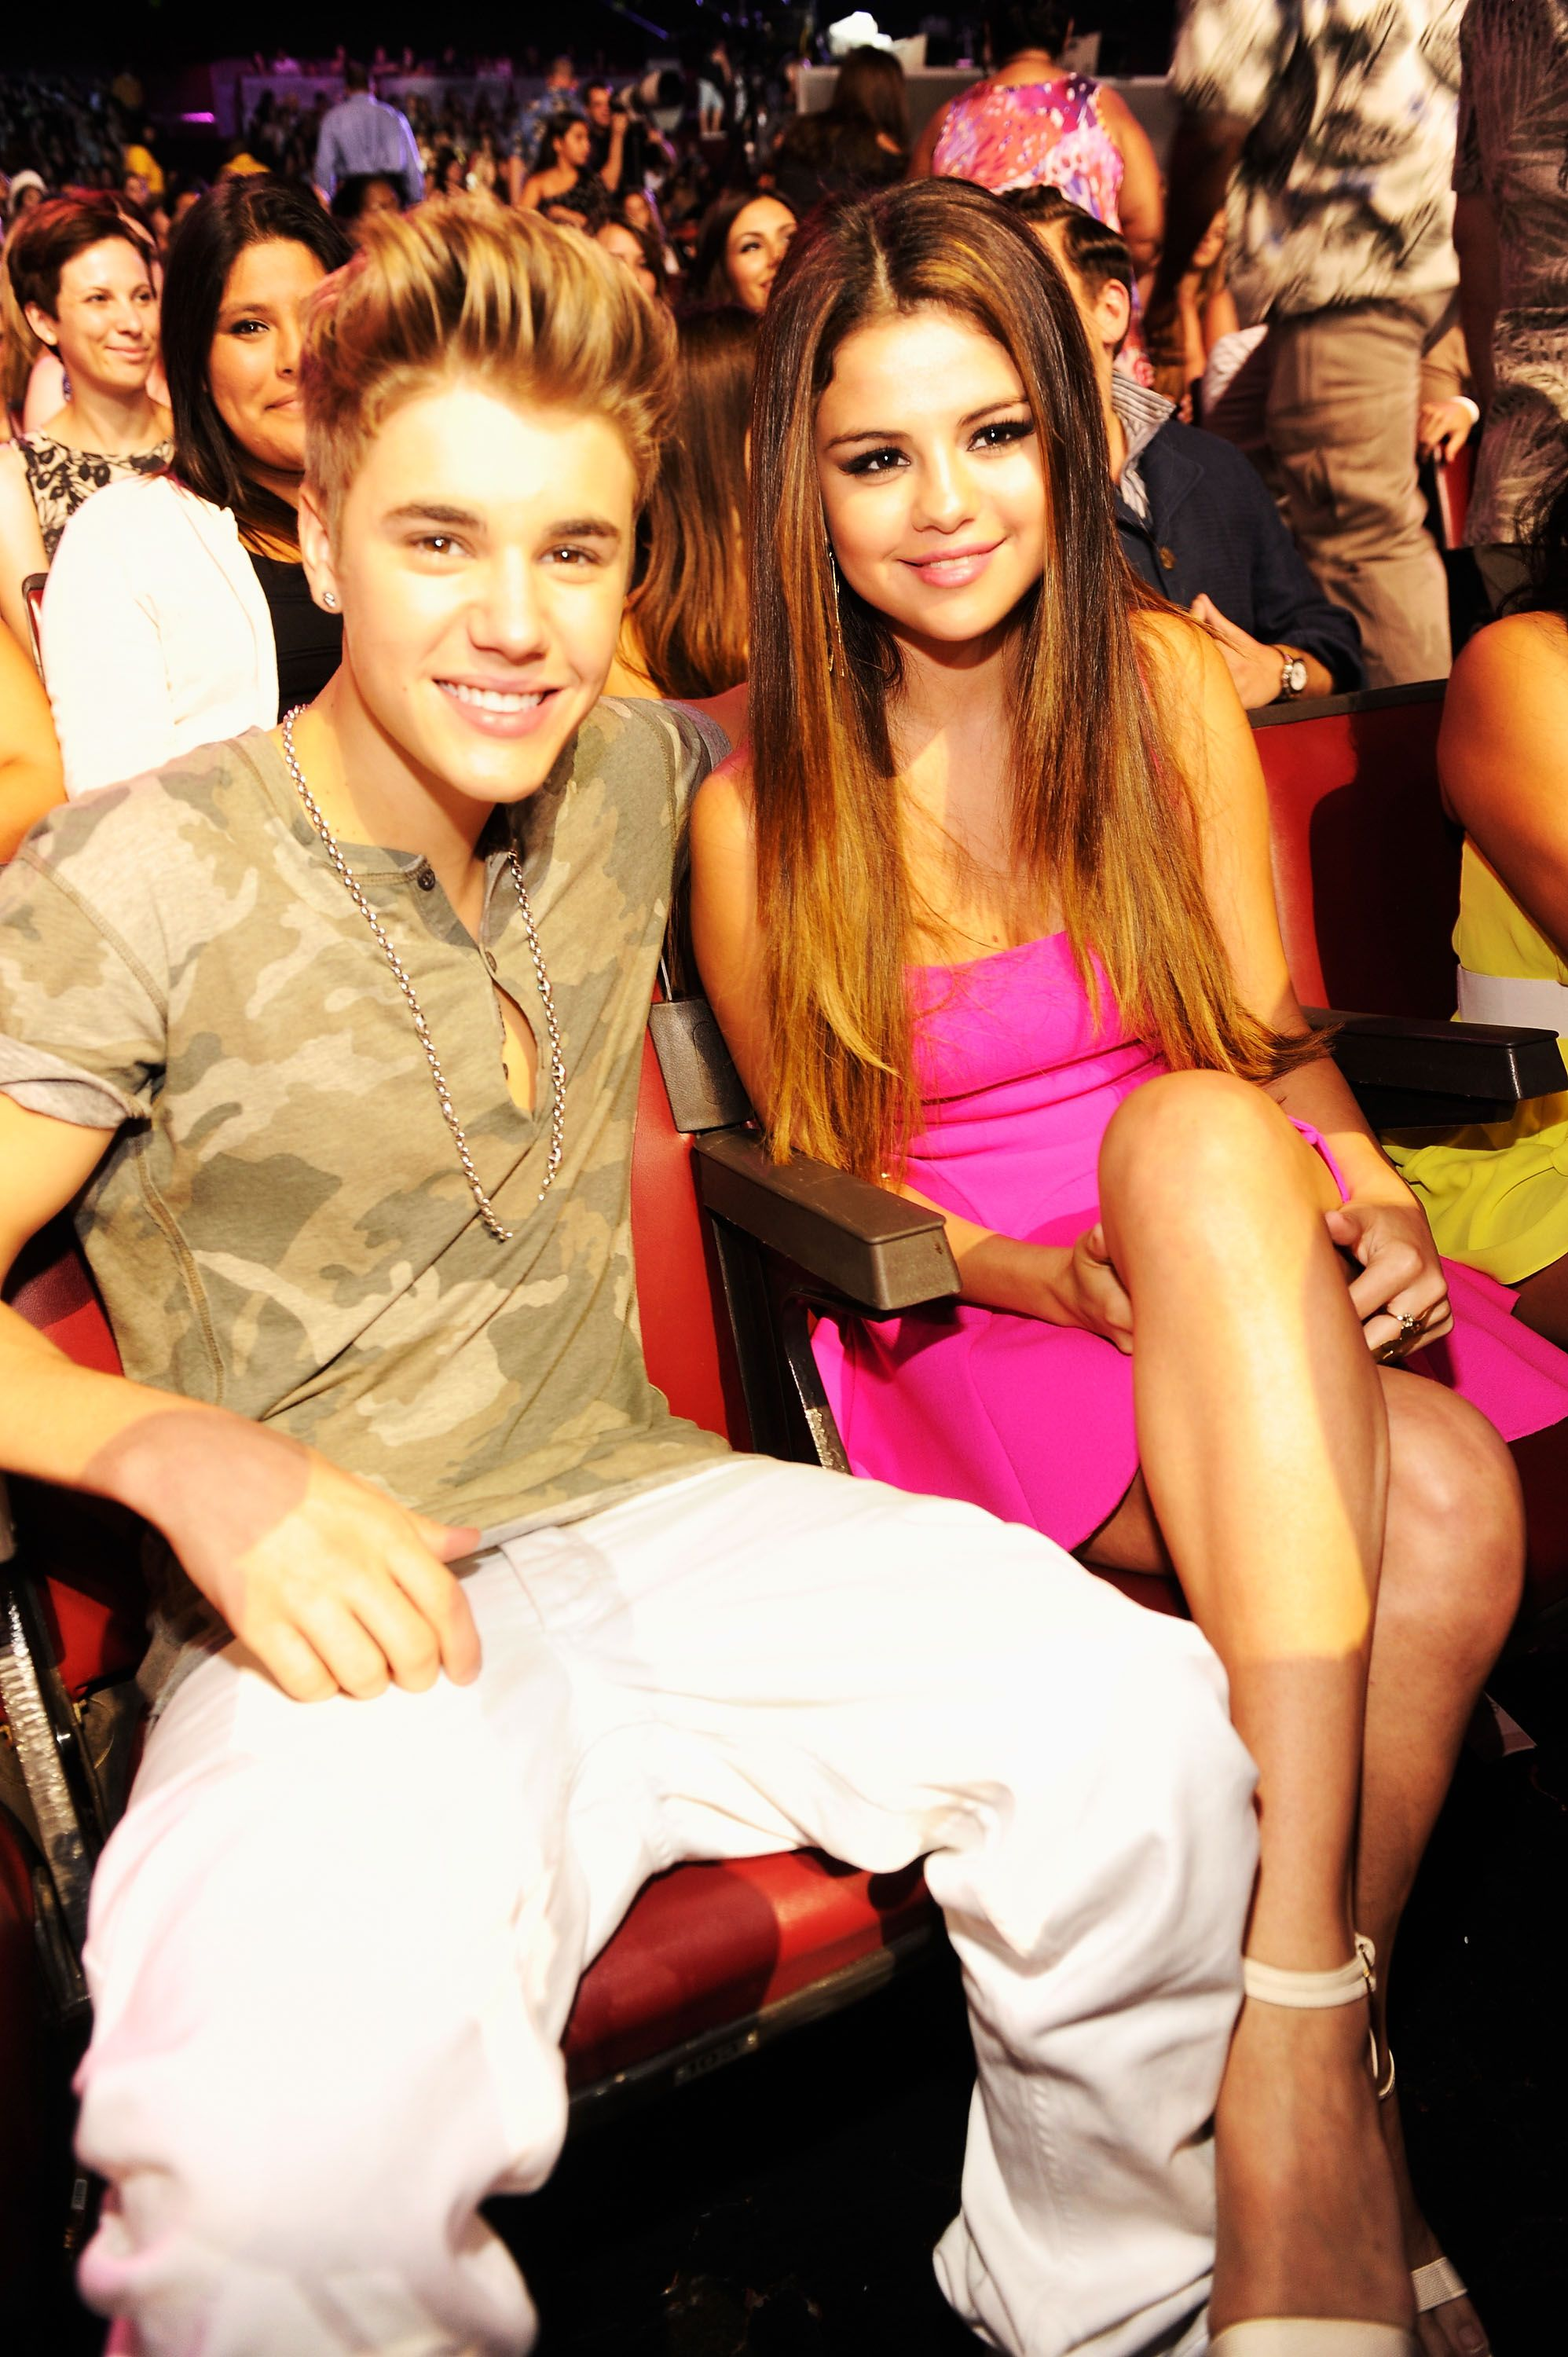 Justin Bieber Says He Was 'Reckless' During His Relationship with Selena Gomez